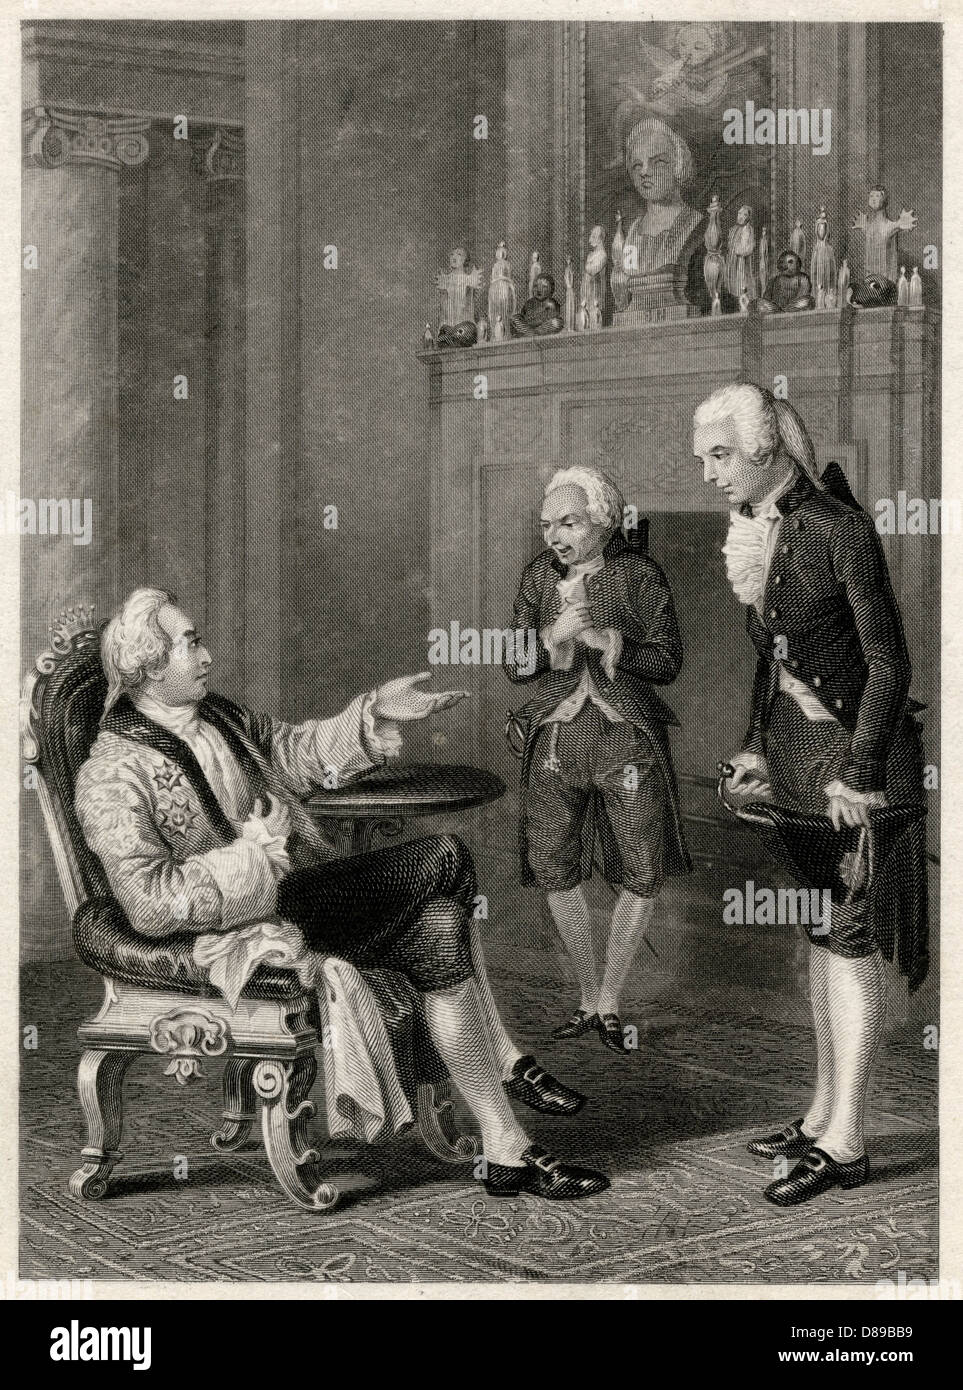 Royal Personage With Two Deferential Visitors - Stock Image